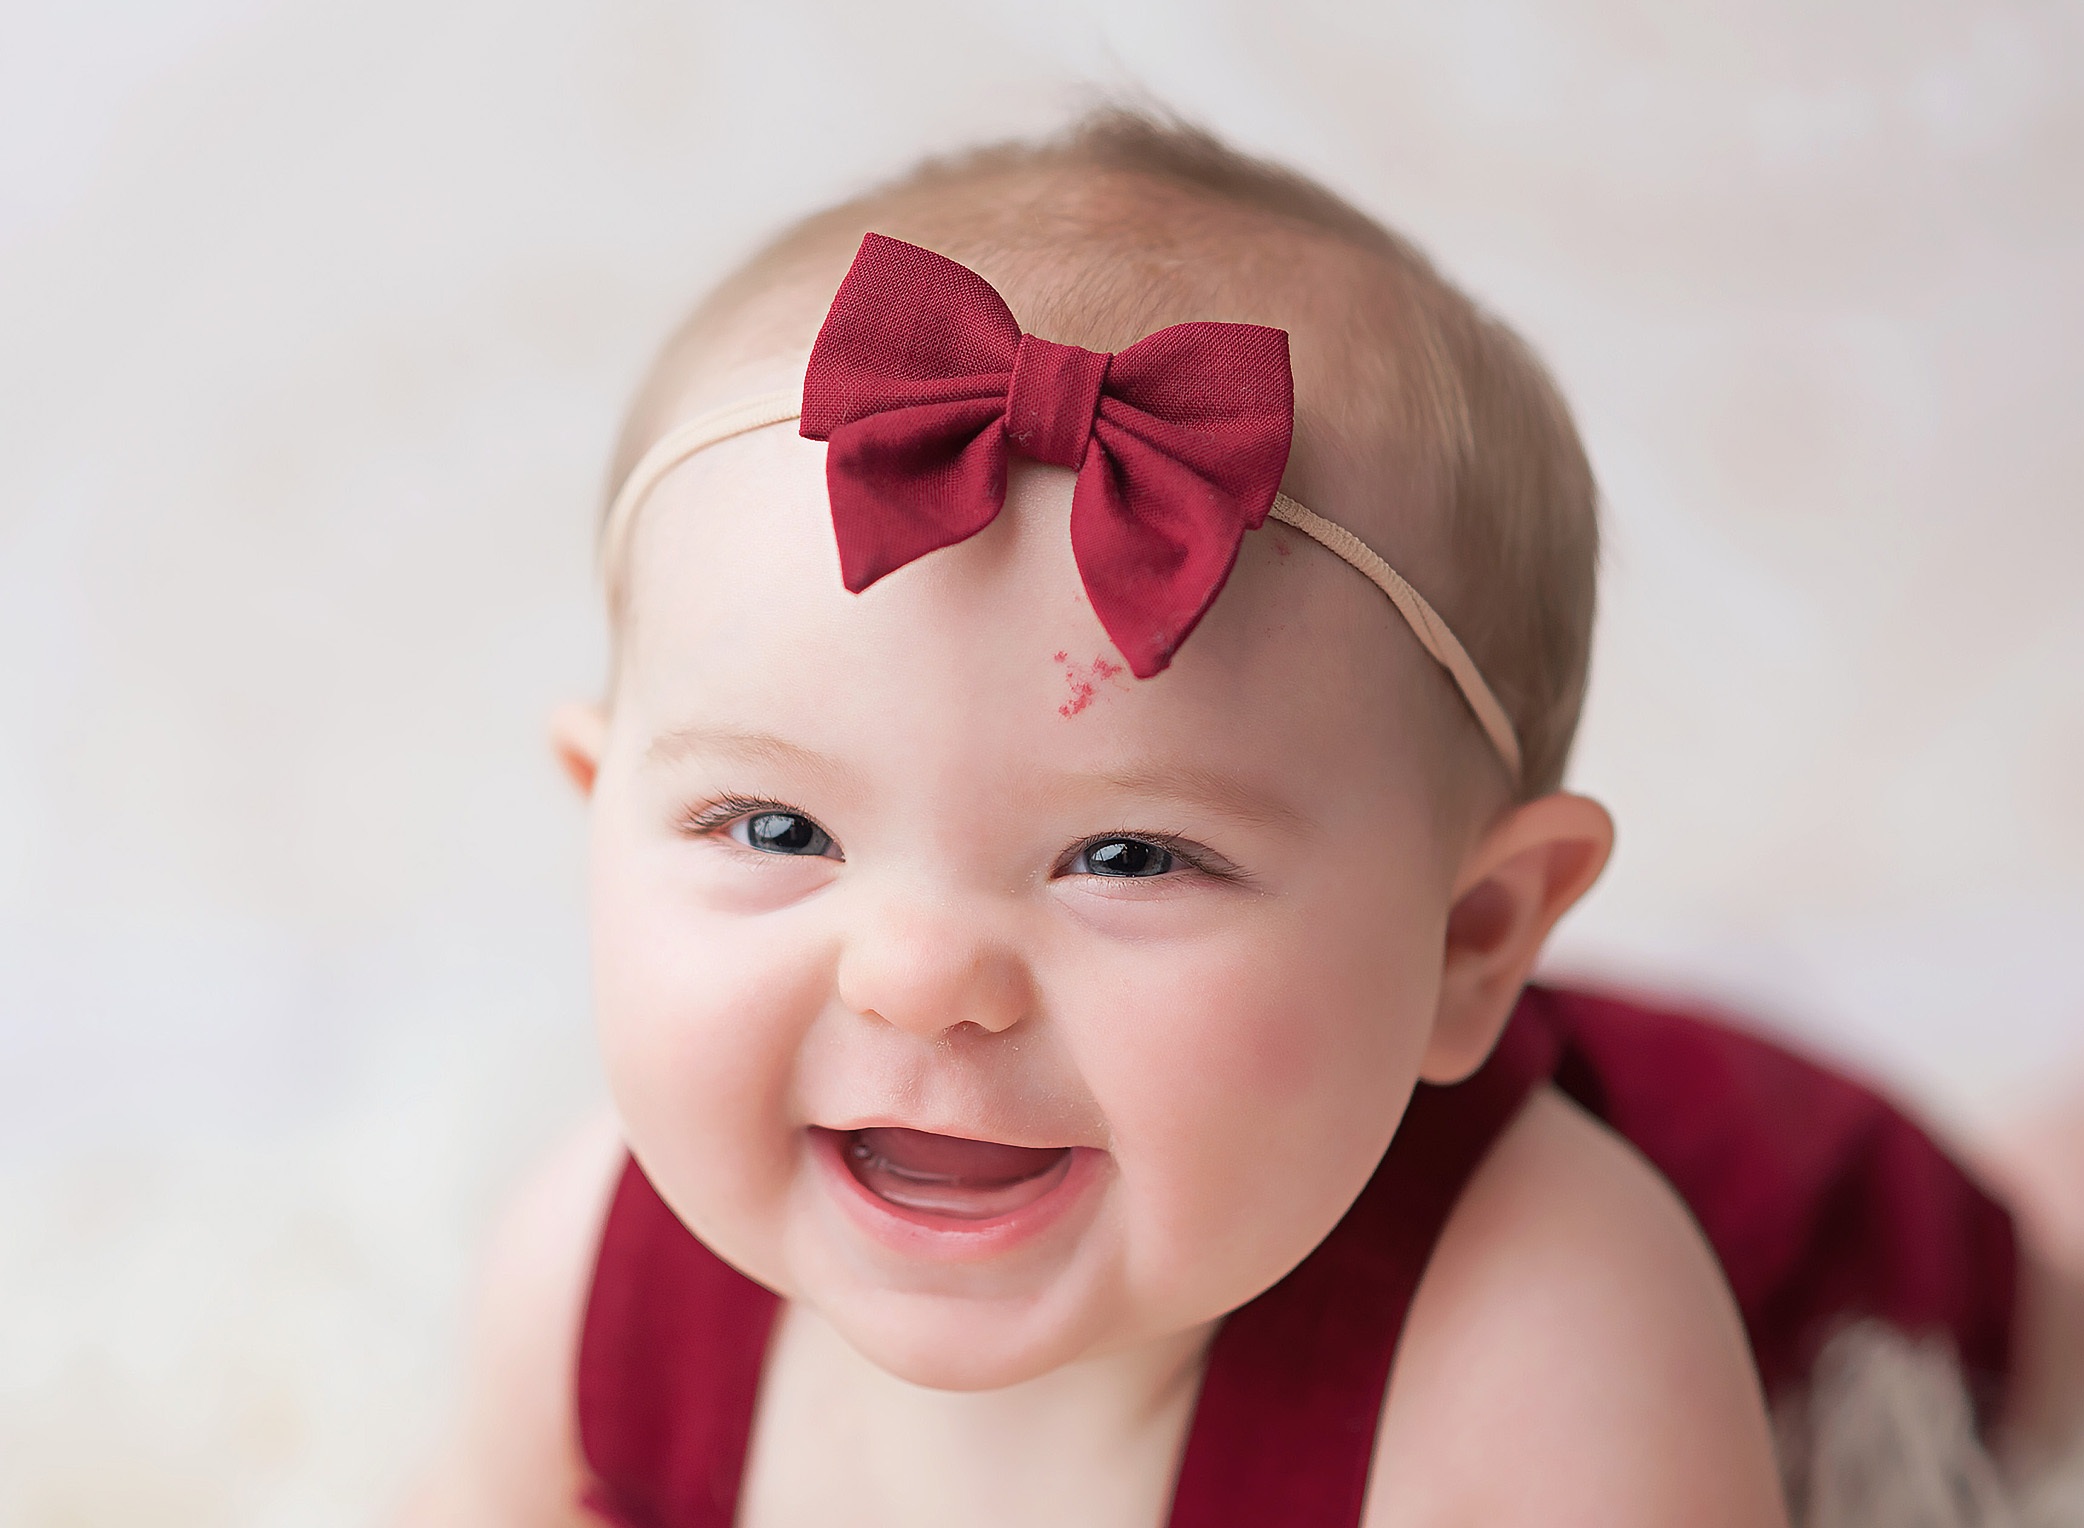 6 month old girl in red outfit